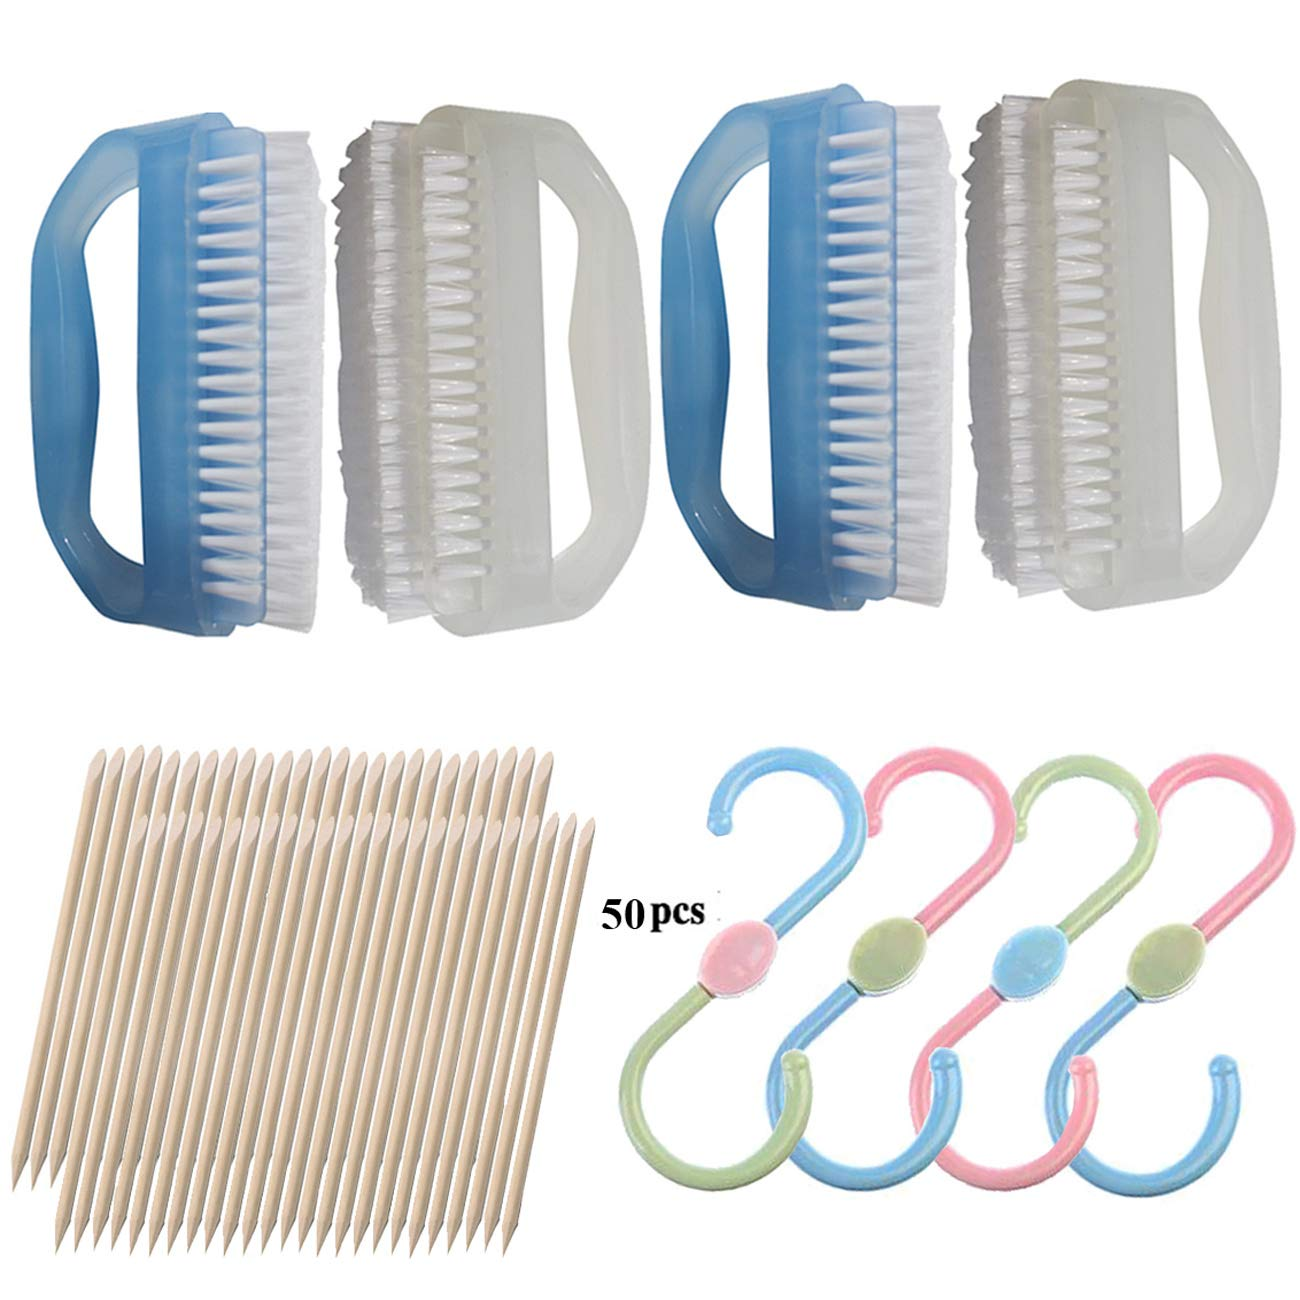 NewFerU Hand Finger Nail Scrub Brush Cleaner Blue and White for Deep Cleaning With Cuticle Remover Tool Set Pack of 4 Chengxing NFU13140